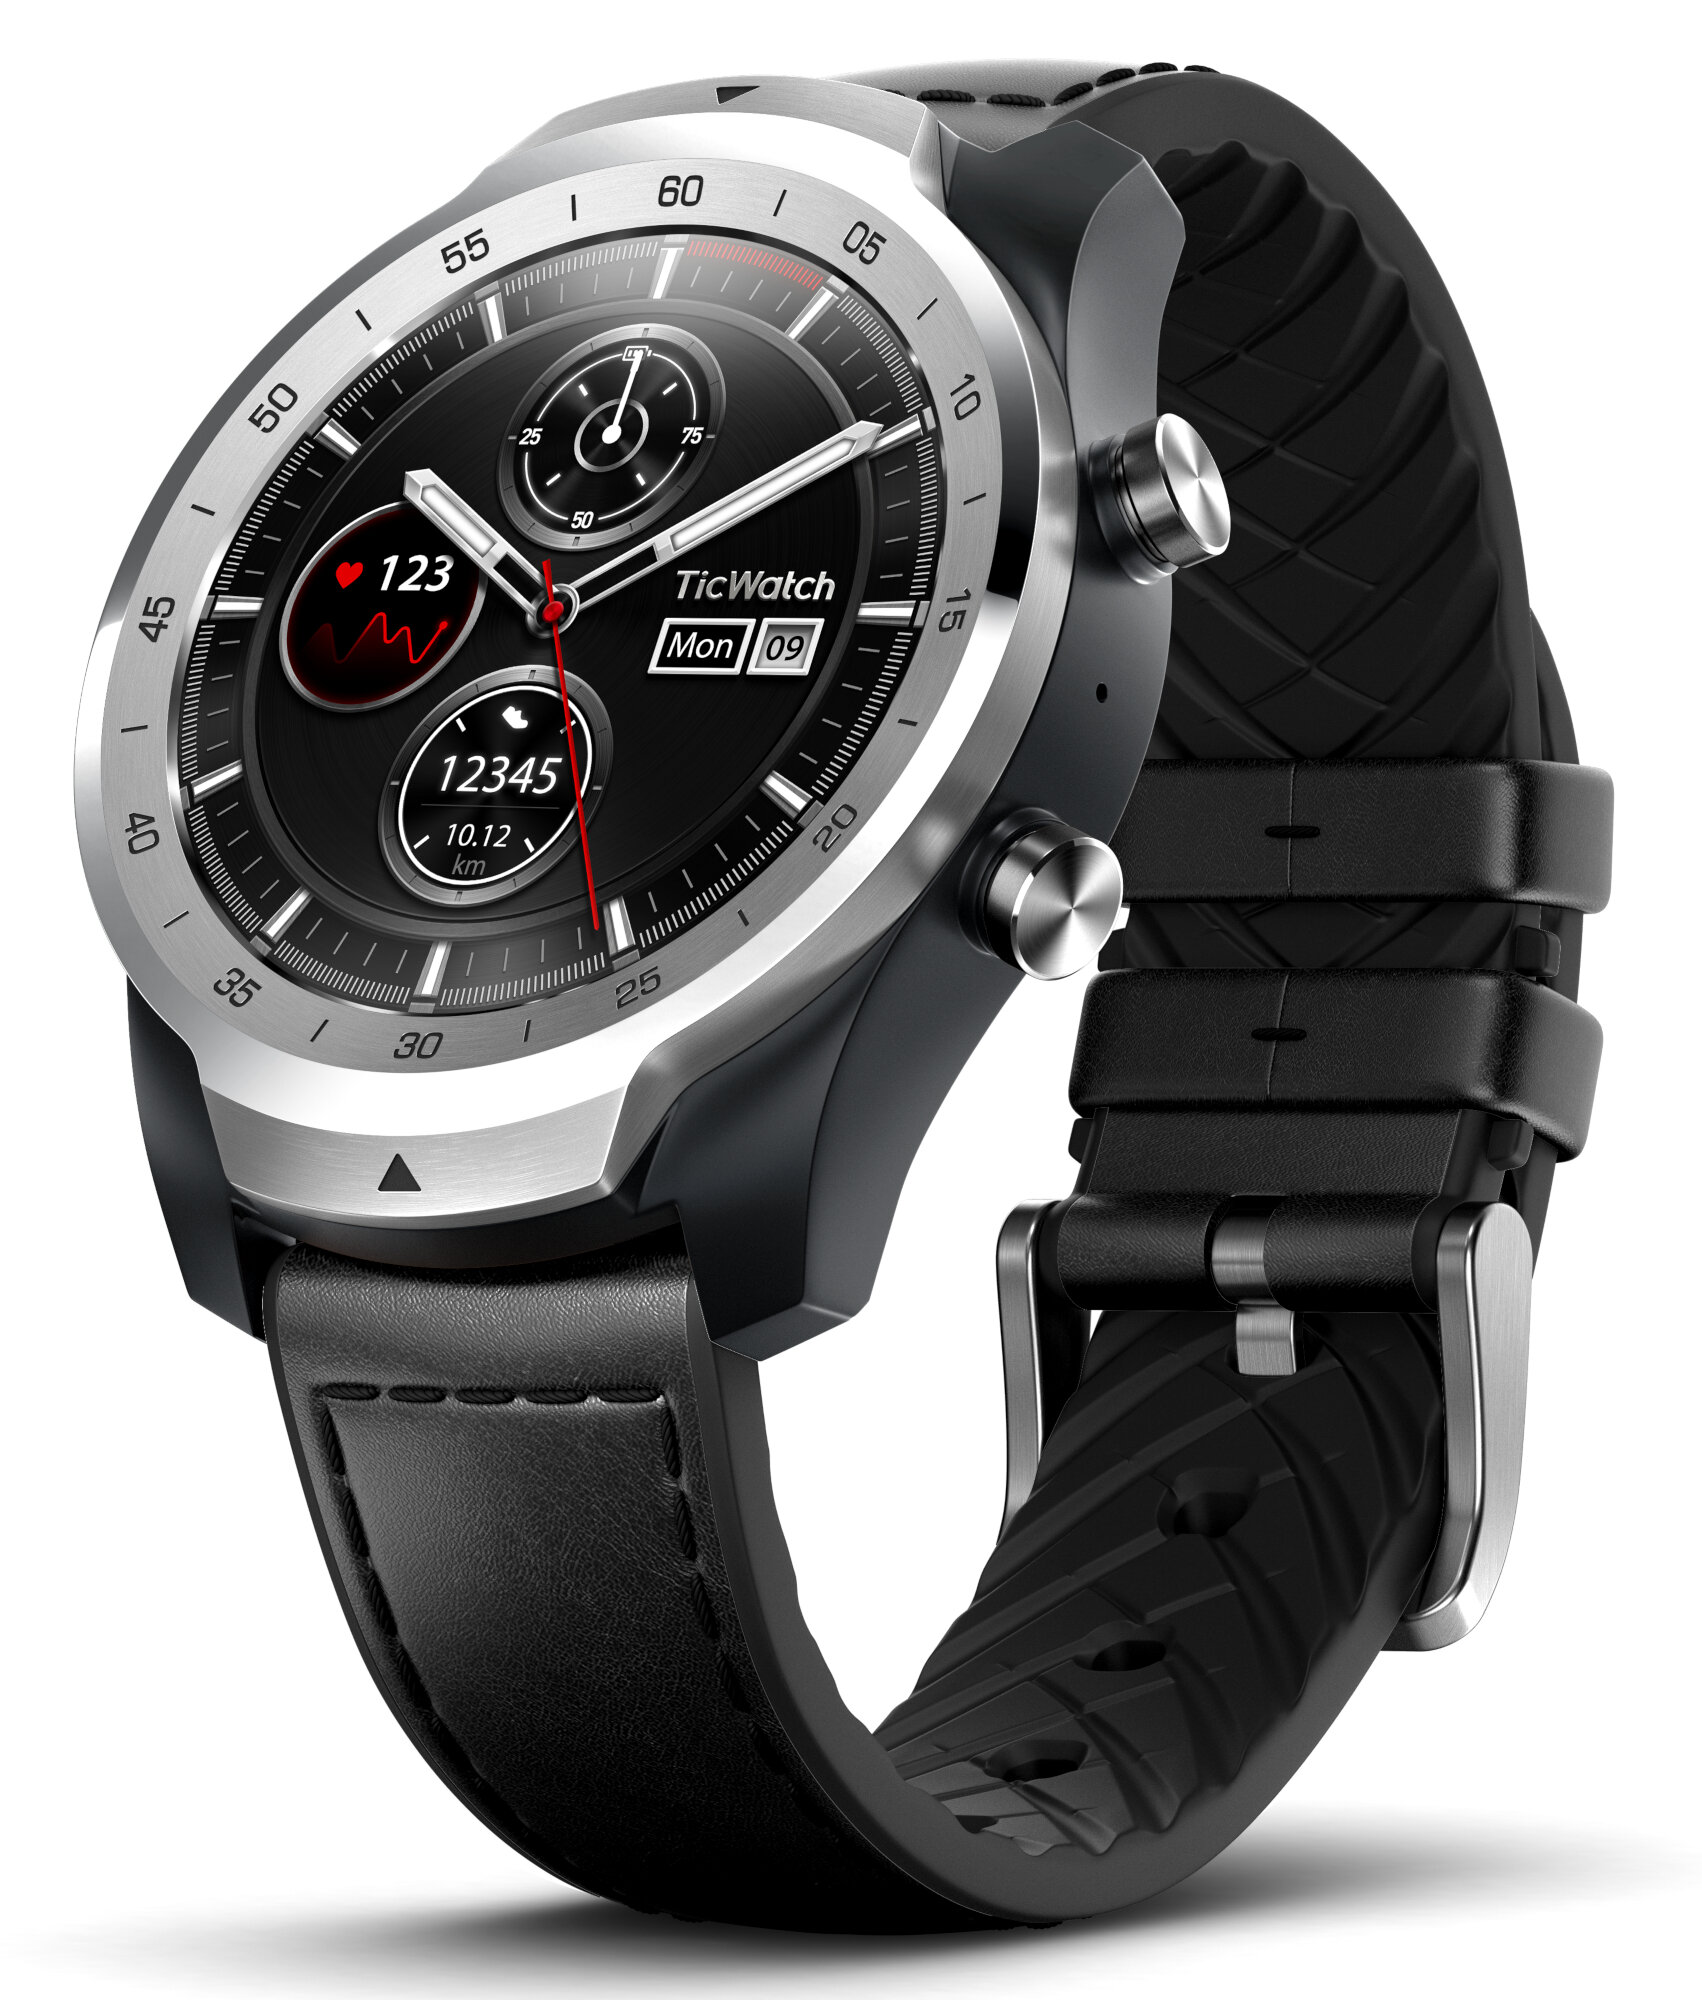 The new TicWatch Pro 2020 smartwatch promises up to 30 ...